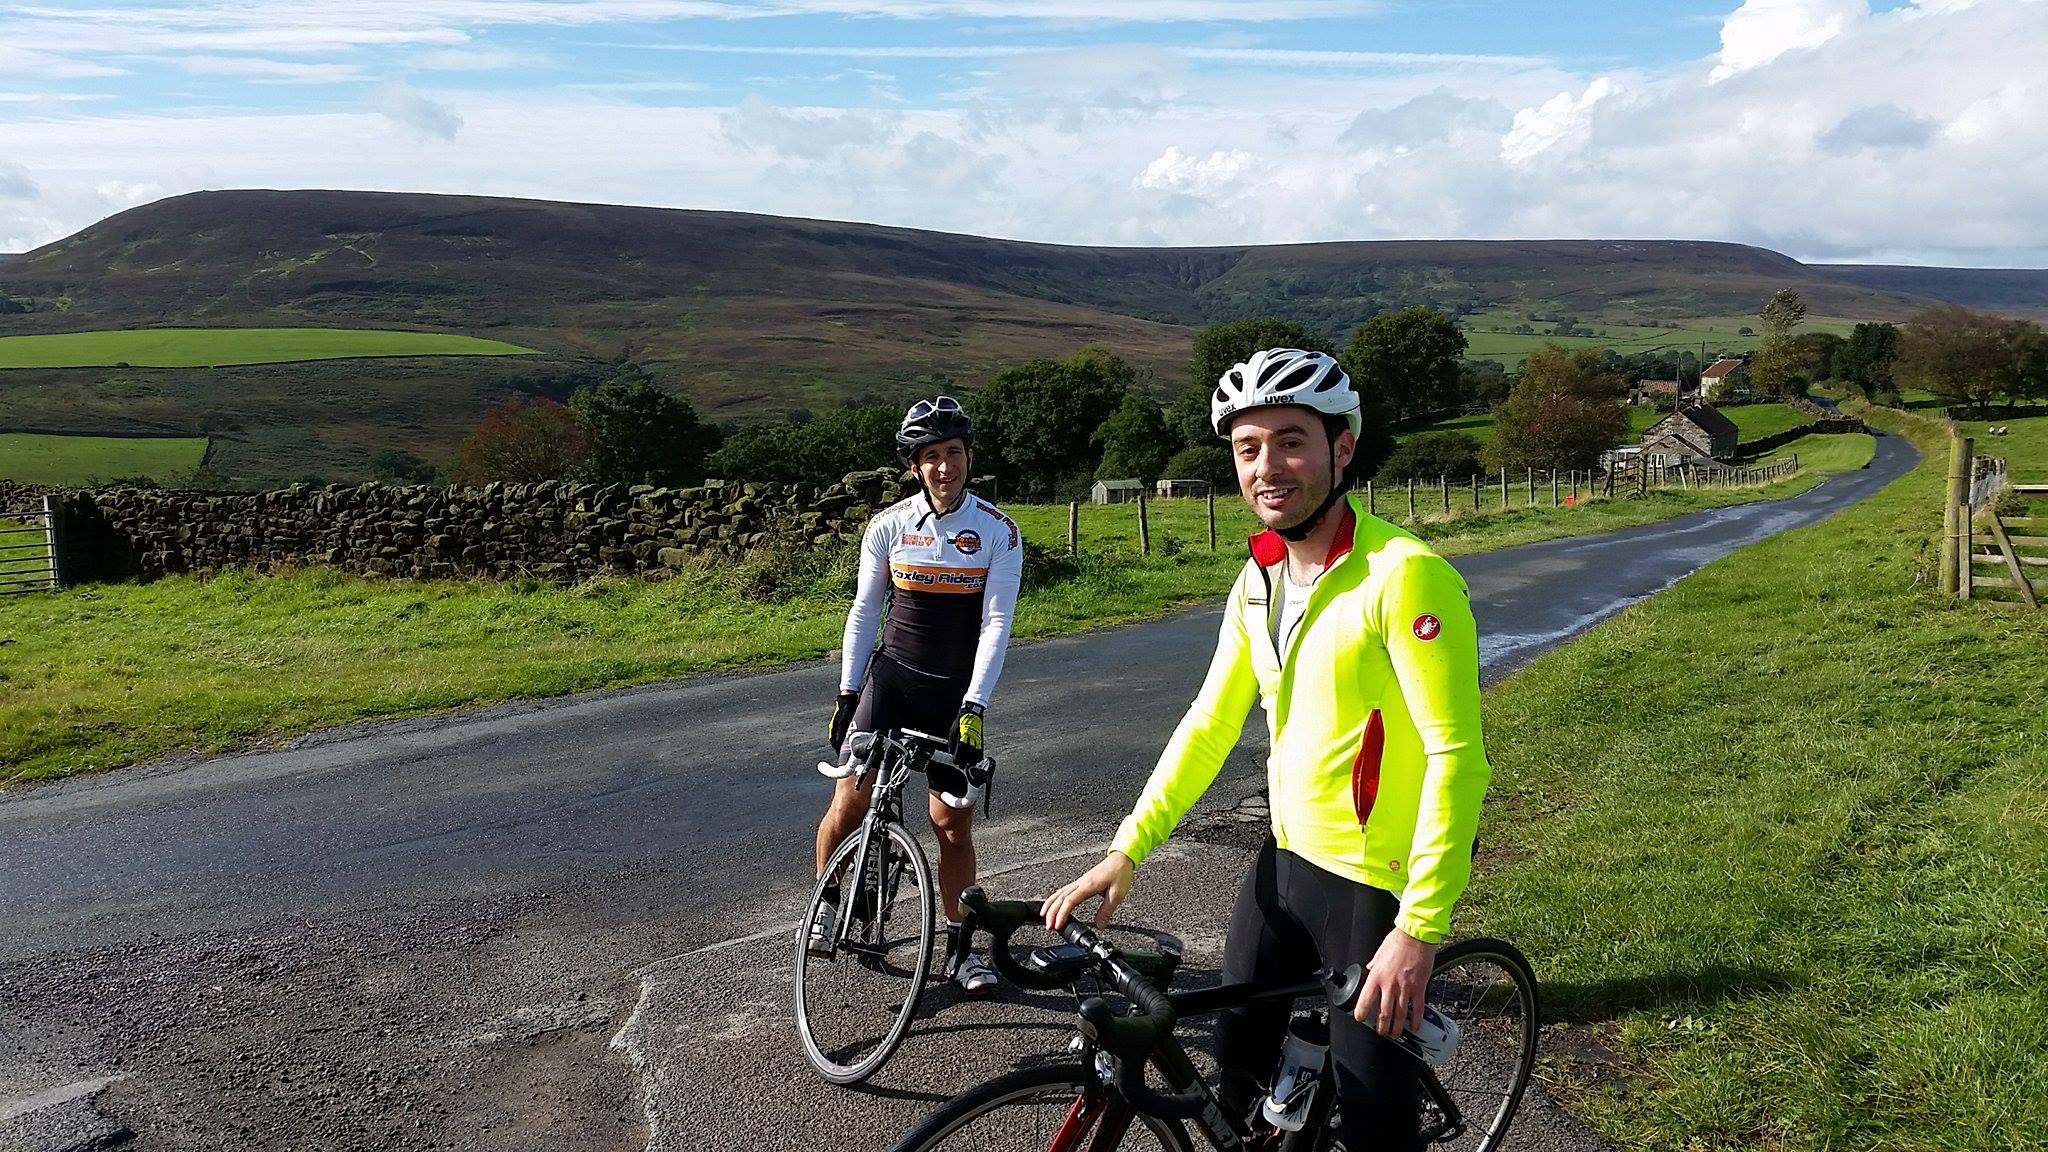 Picking up an additional 2 climbs in the North York Moors